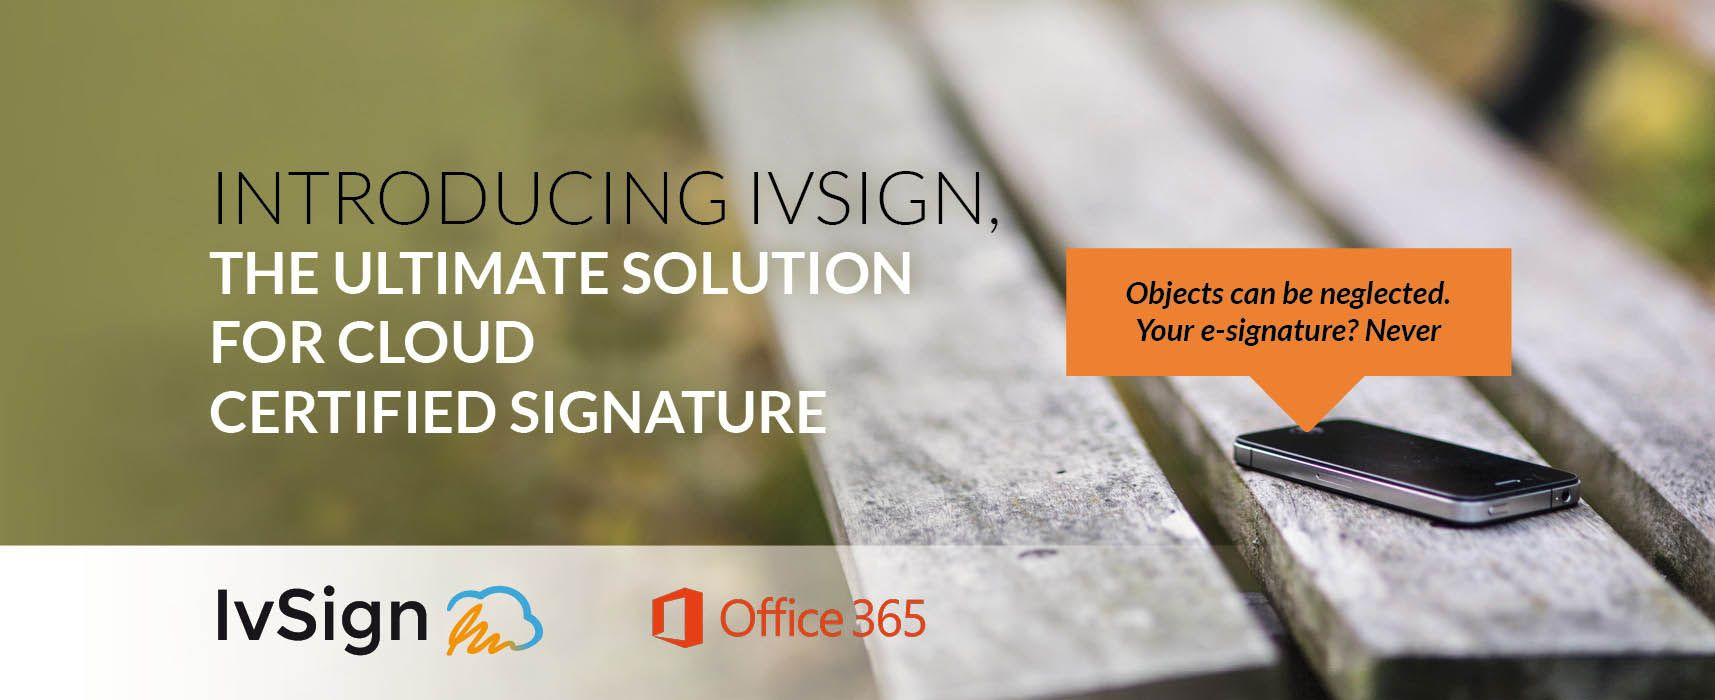 Introducing IvSign. The ultimate solution for cloud certified signature